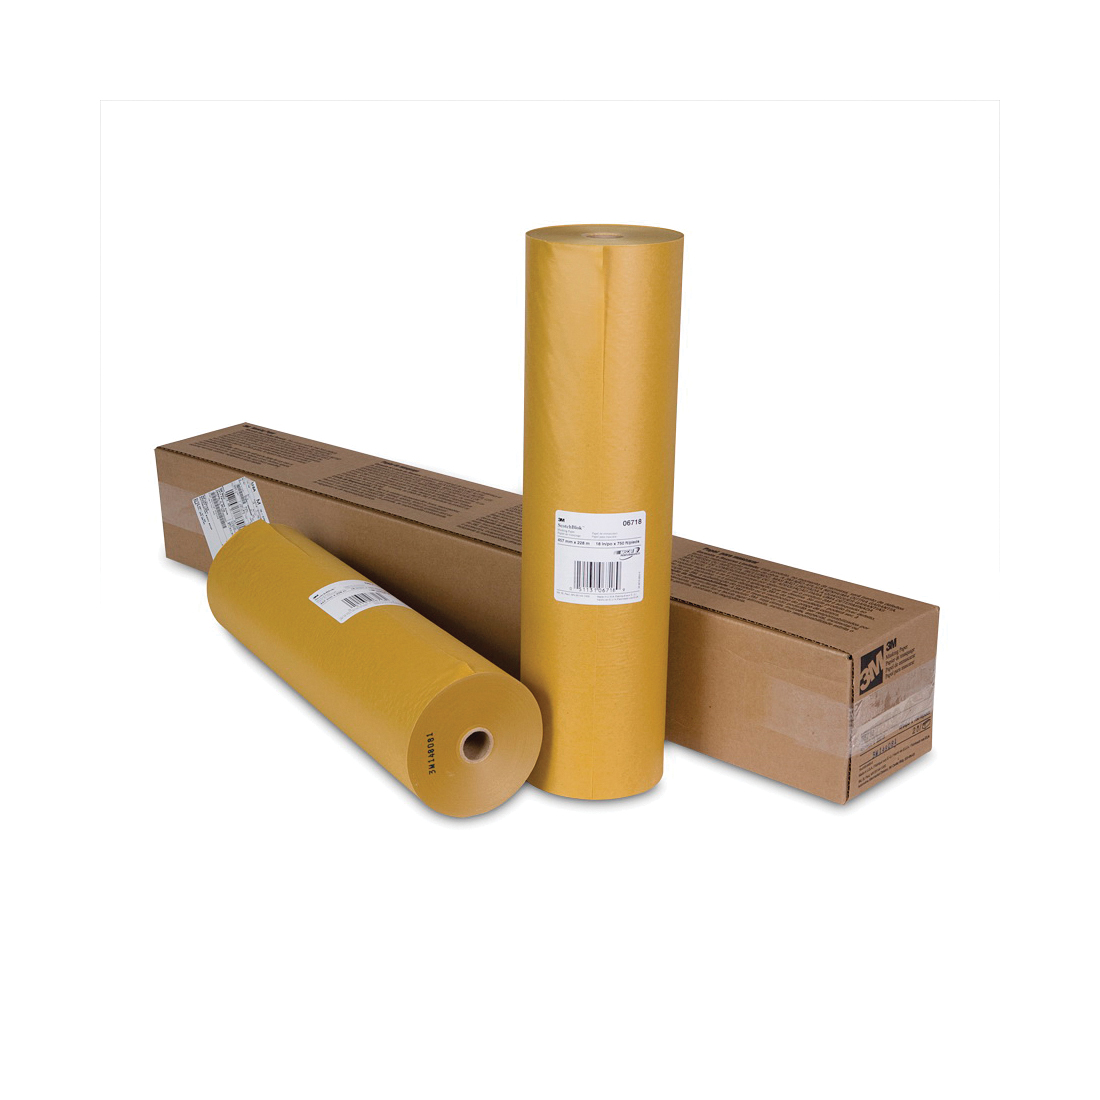 3M™ Scotchblok™ 051131-06718 6718 Masking Paper, 18 in W x 750 ft Roll L, 2 mil THK, Paper, Gold